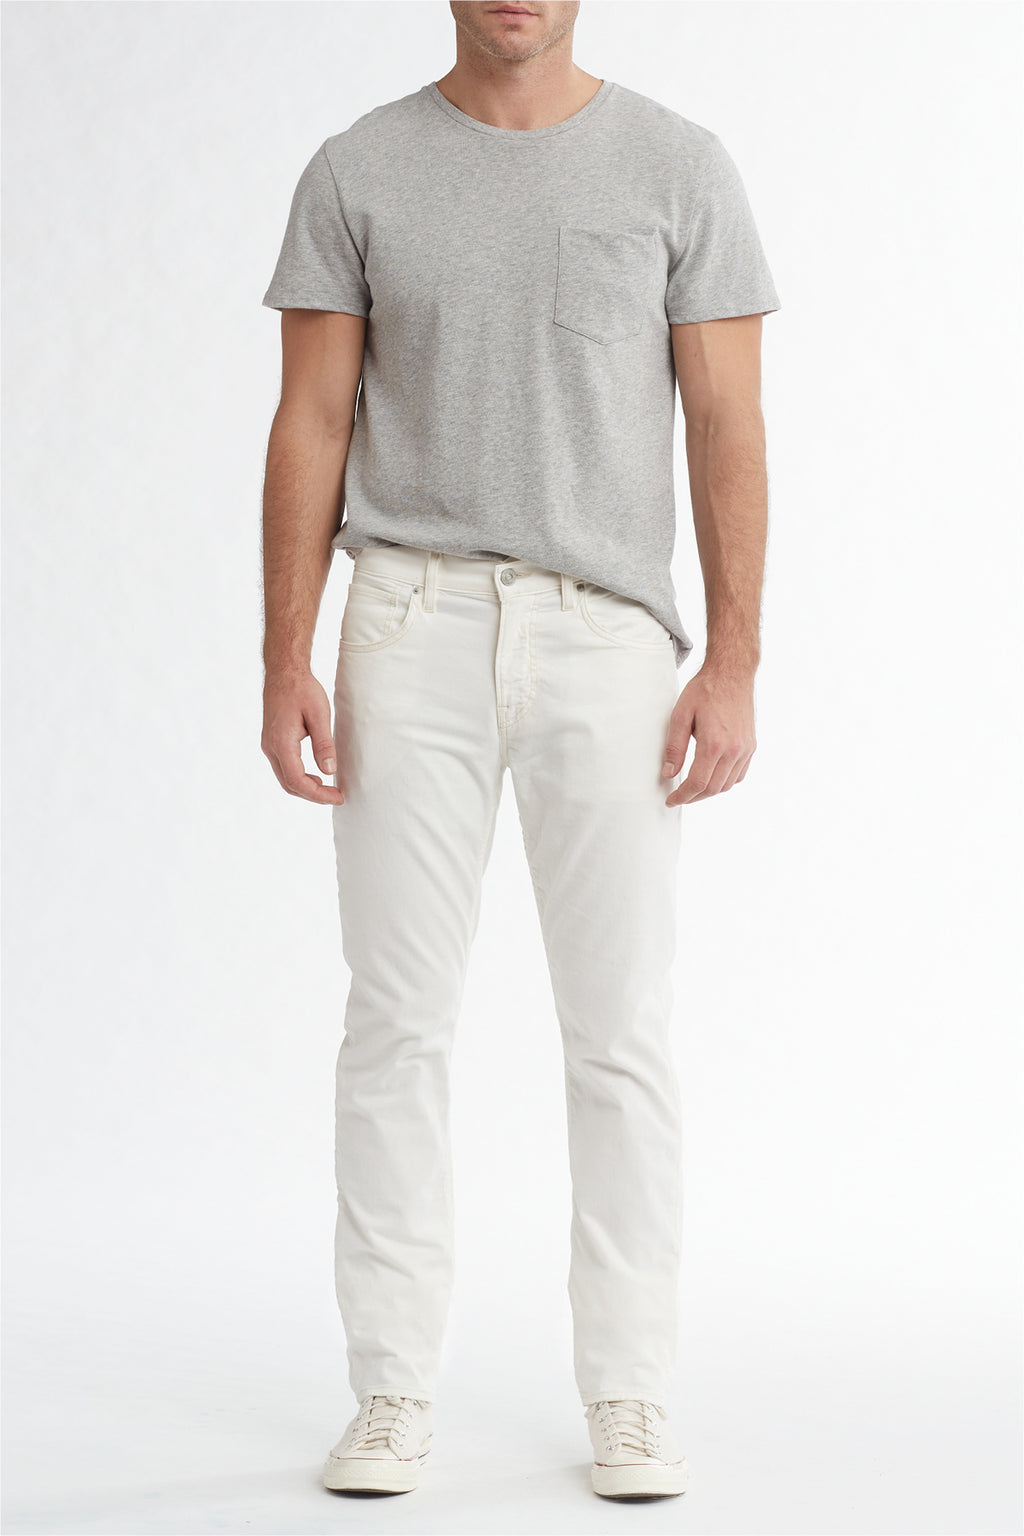 BLAKE SLIM STRAIGHT TWILL JEAN - DIRTY WHITE - Image 1